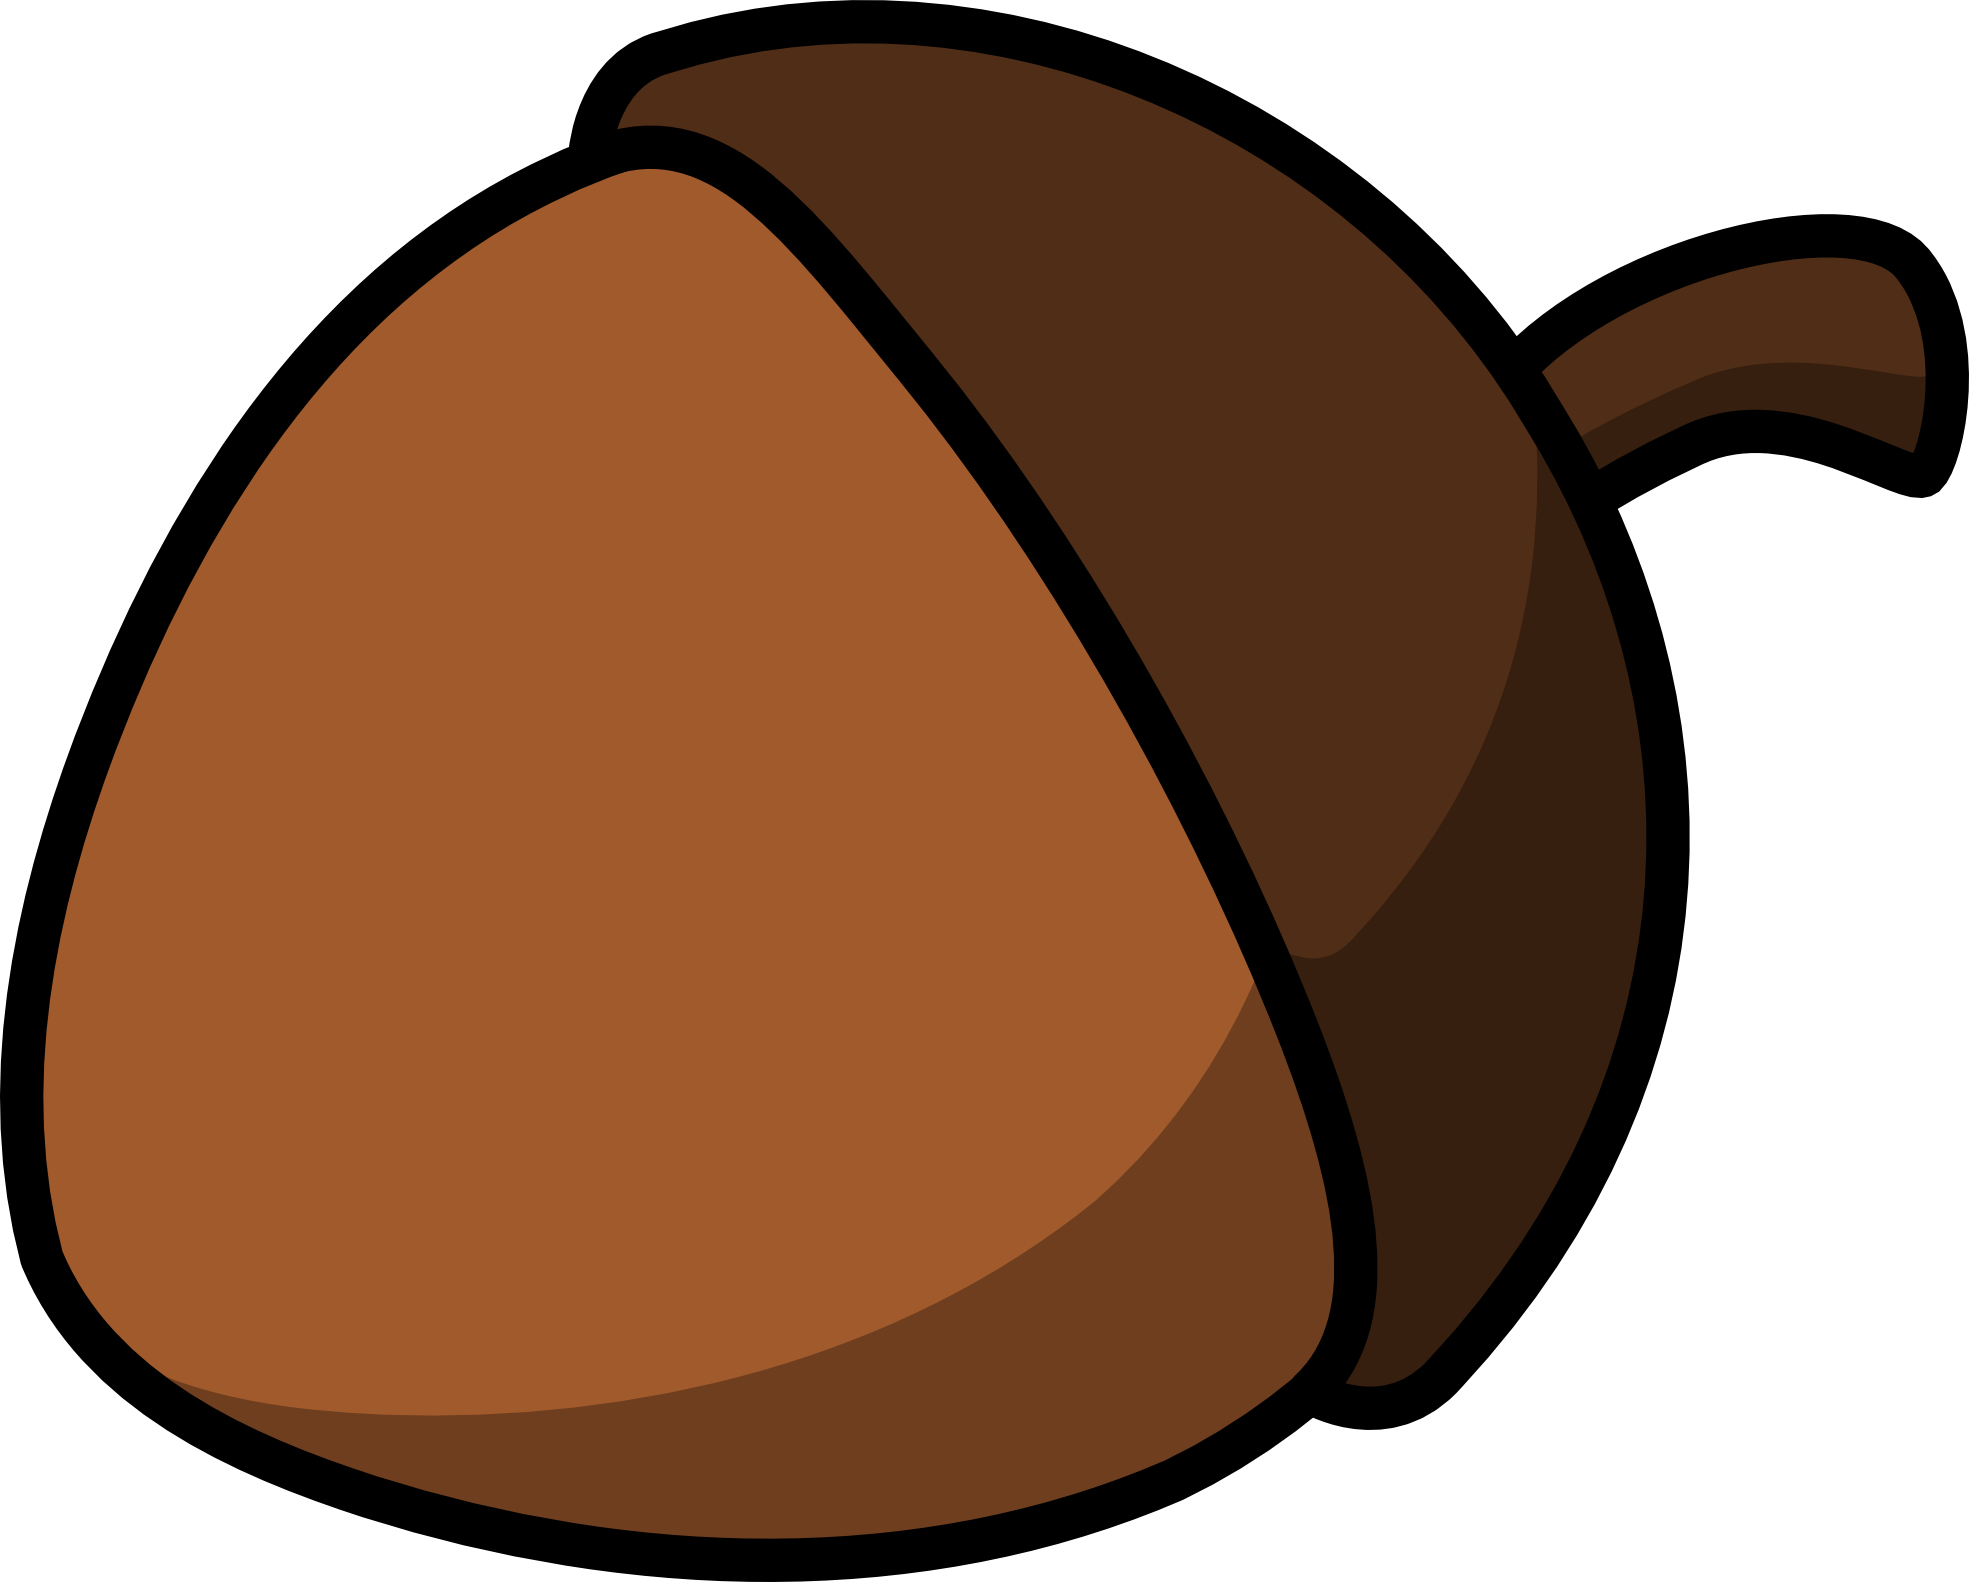 Acorn Clipart Black And White | - 111.6KB